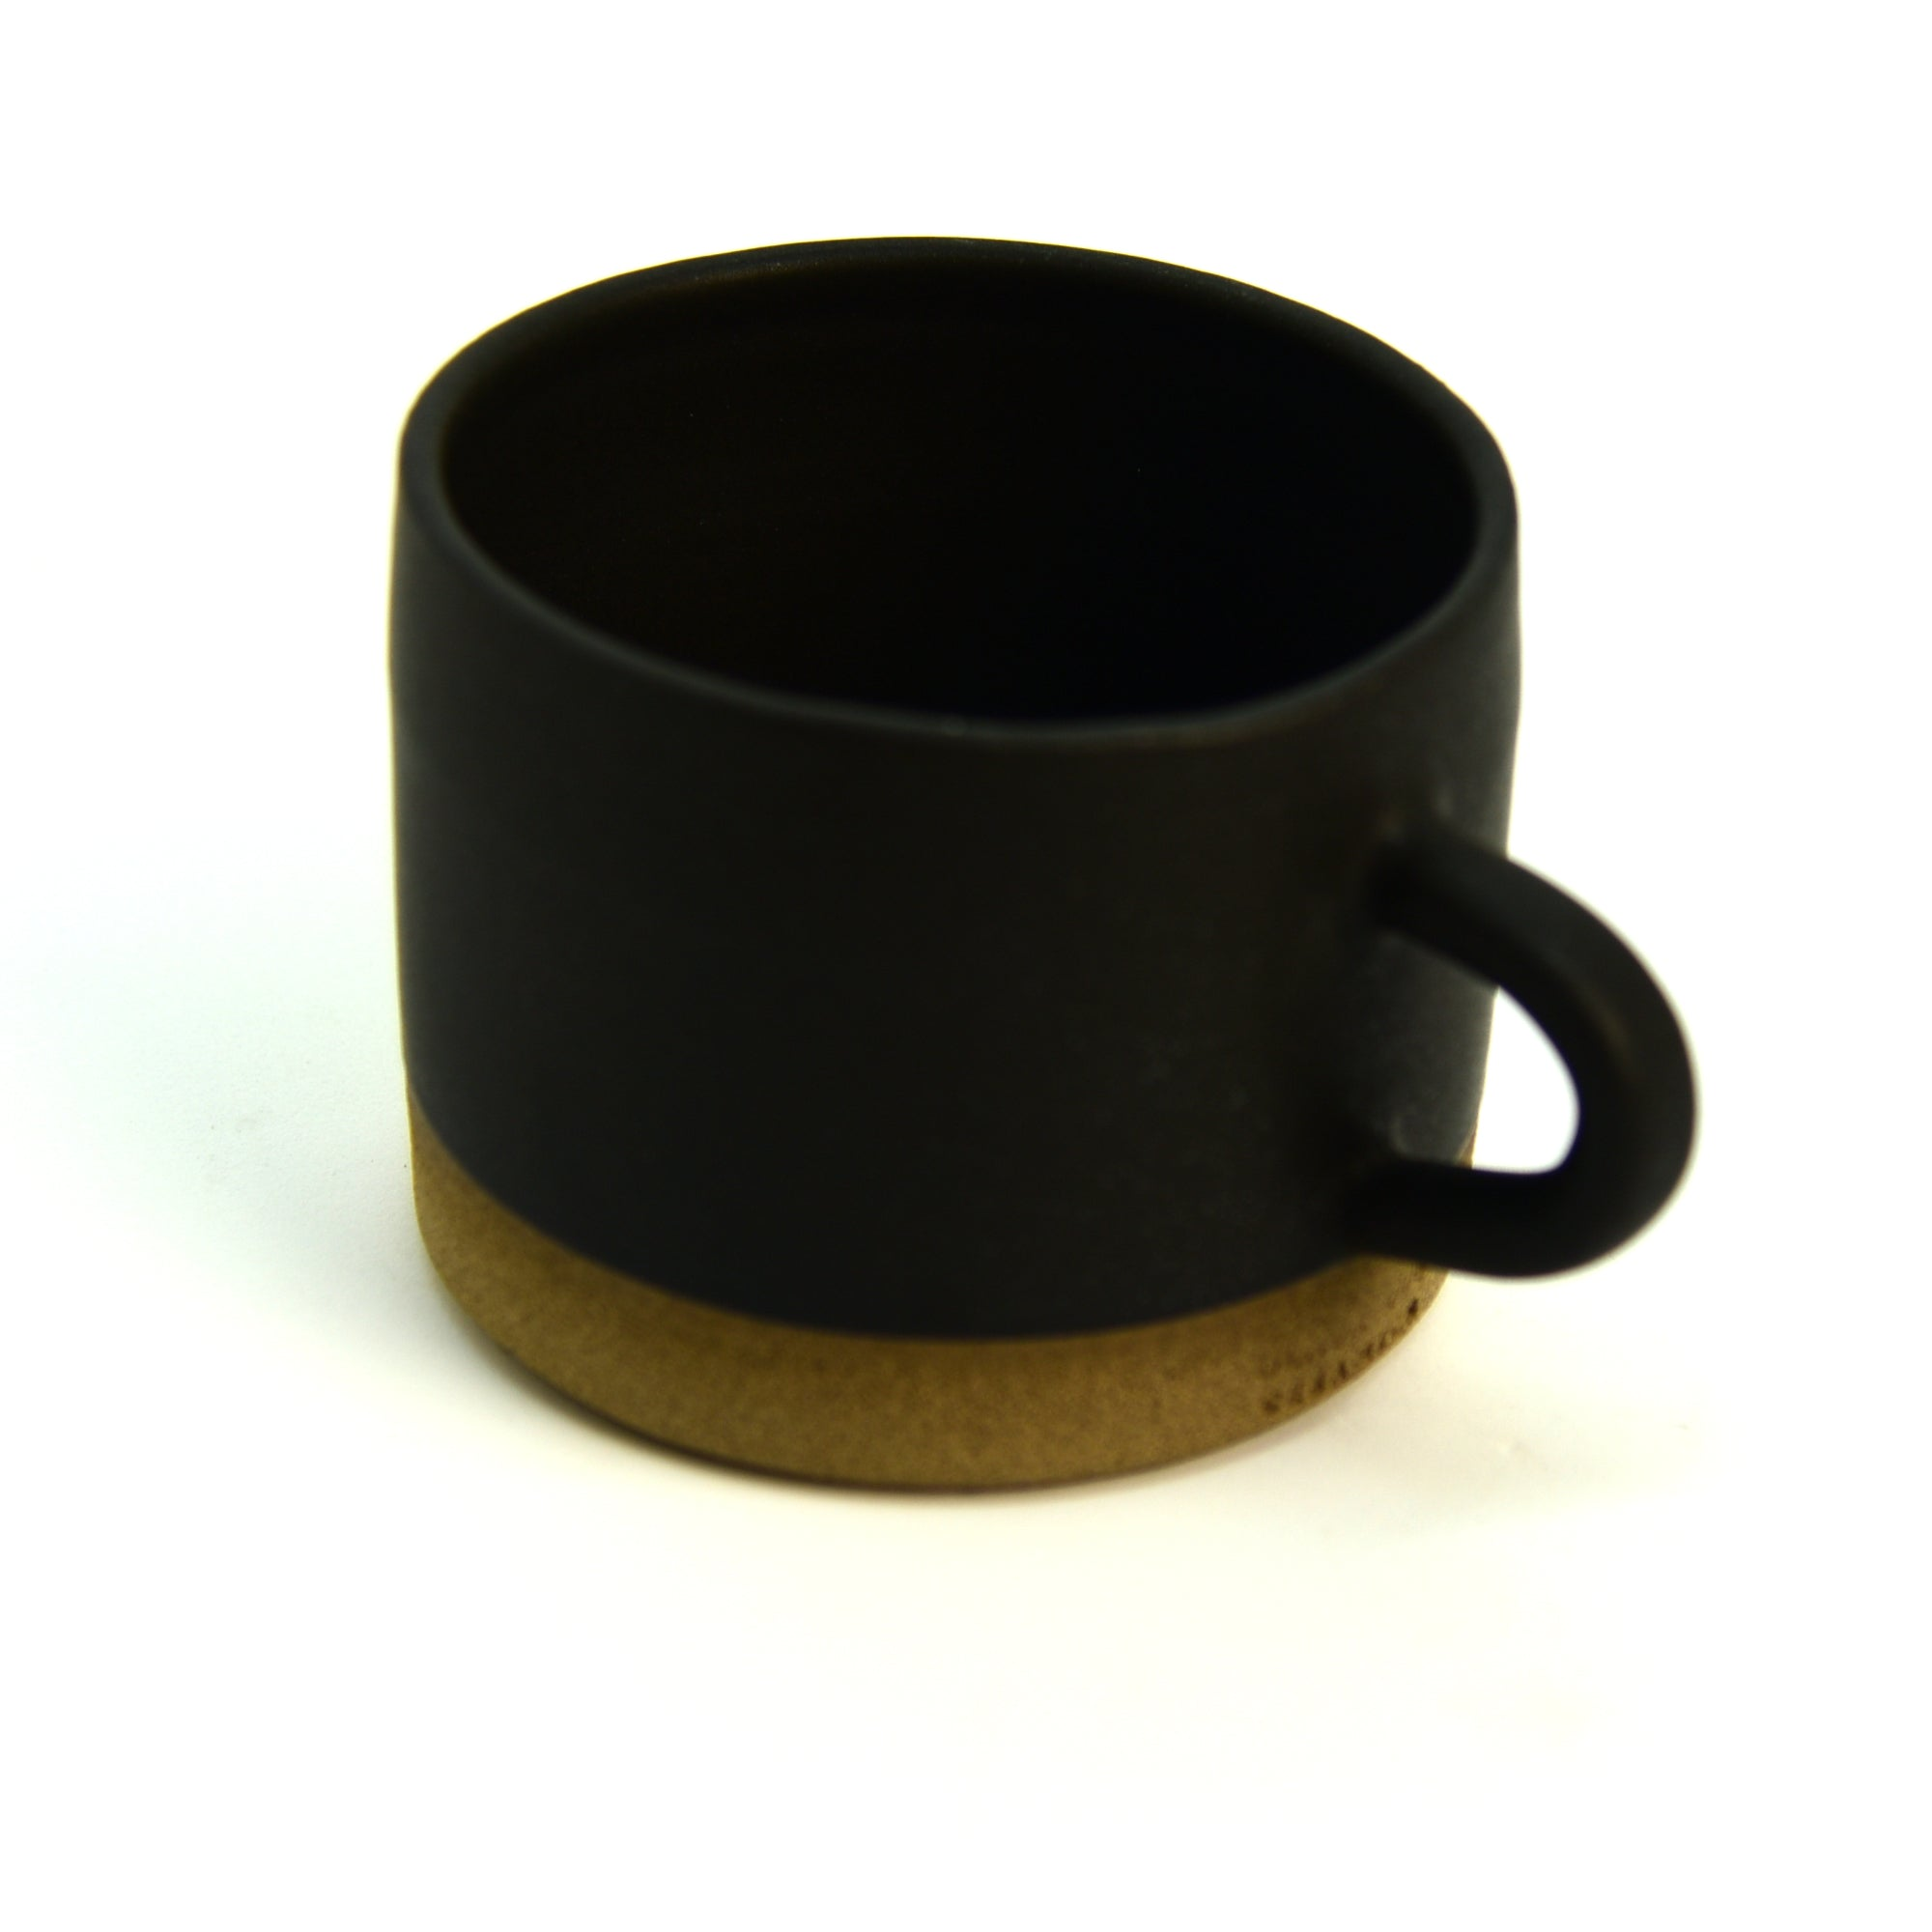 Ceramic Cup / Mug - Wide - Sand + Black